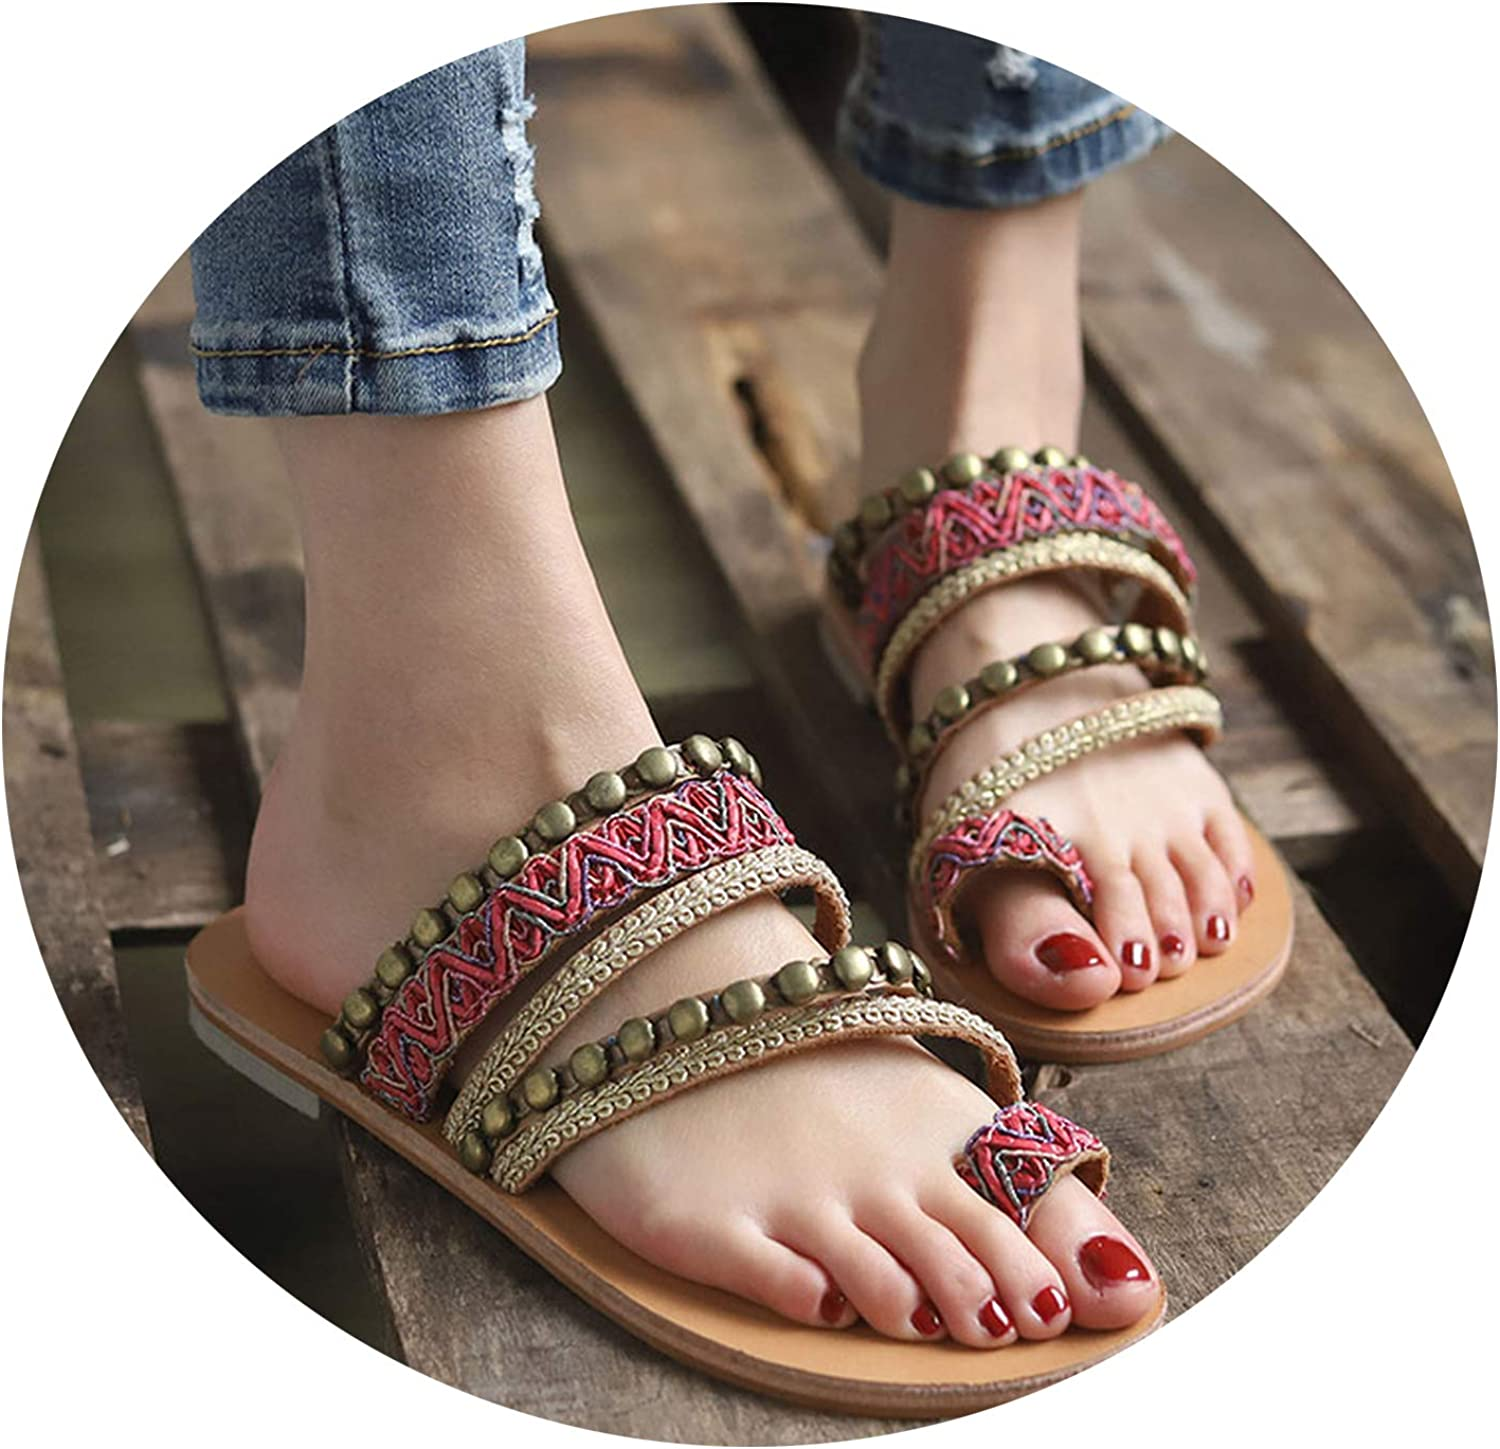 Women's shoes Bohemian Gladiator Beach Flat Sandals